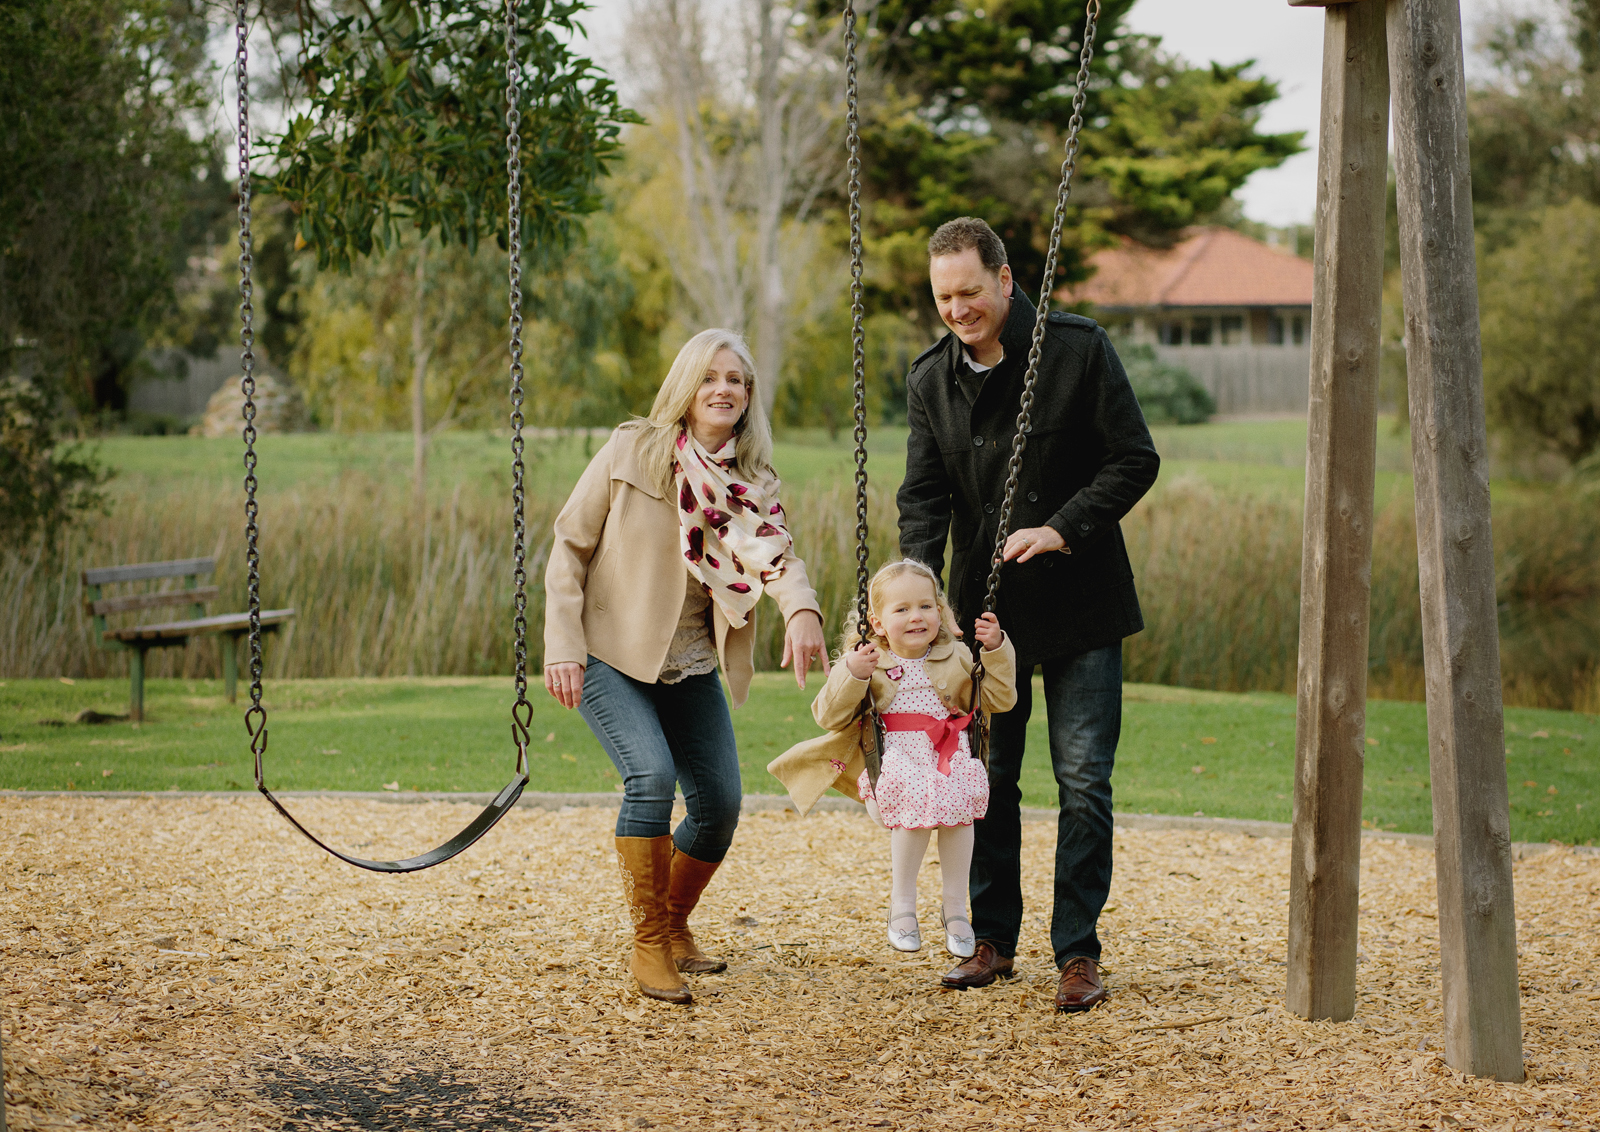 Family playing on the swings at the park!